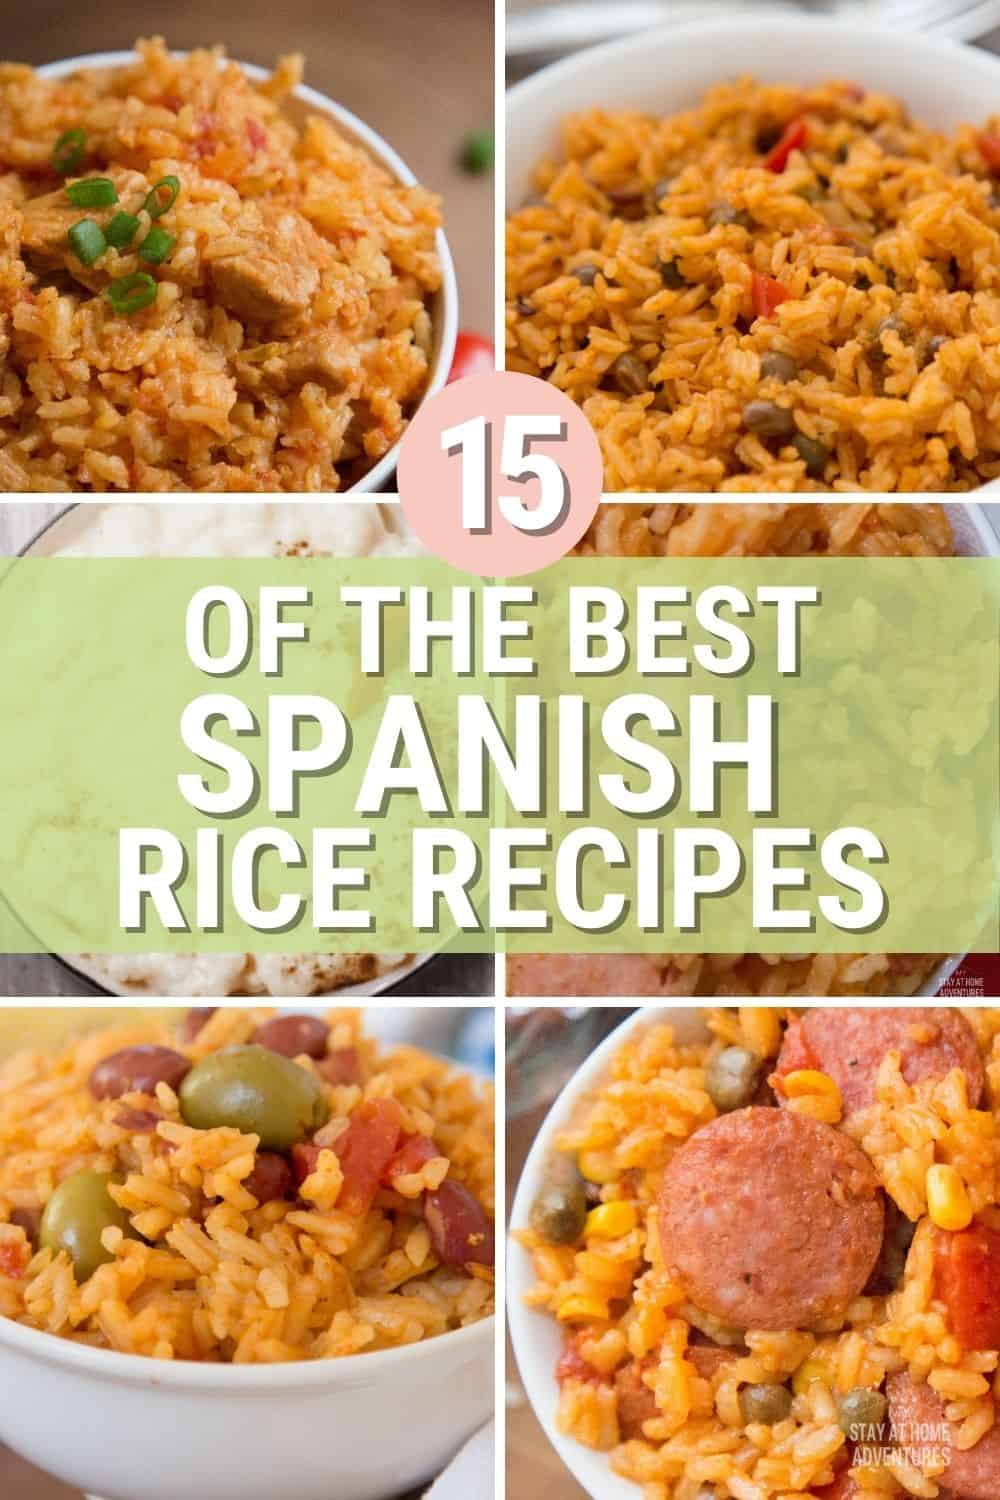 Looking for a delicious Spanish rice recipe? We have the best Spanish rice recipes from around the web, from caldero to Instant Post. #spanishrice #ricerecipes #latinrice via @mystayathome